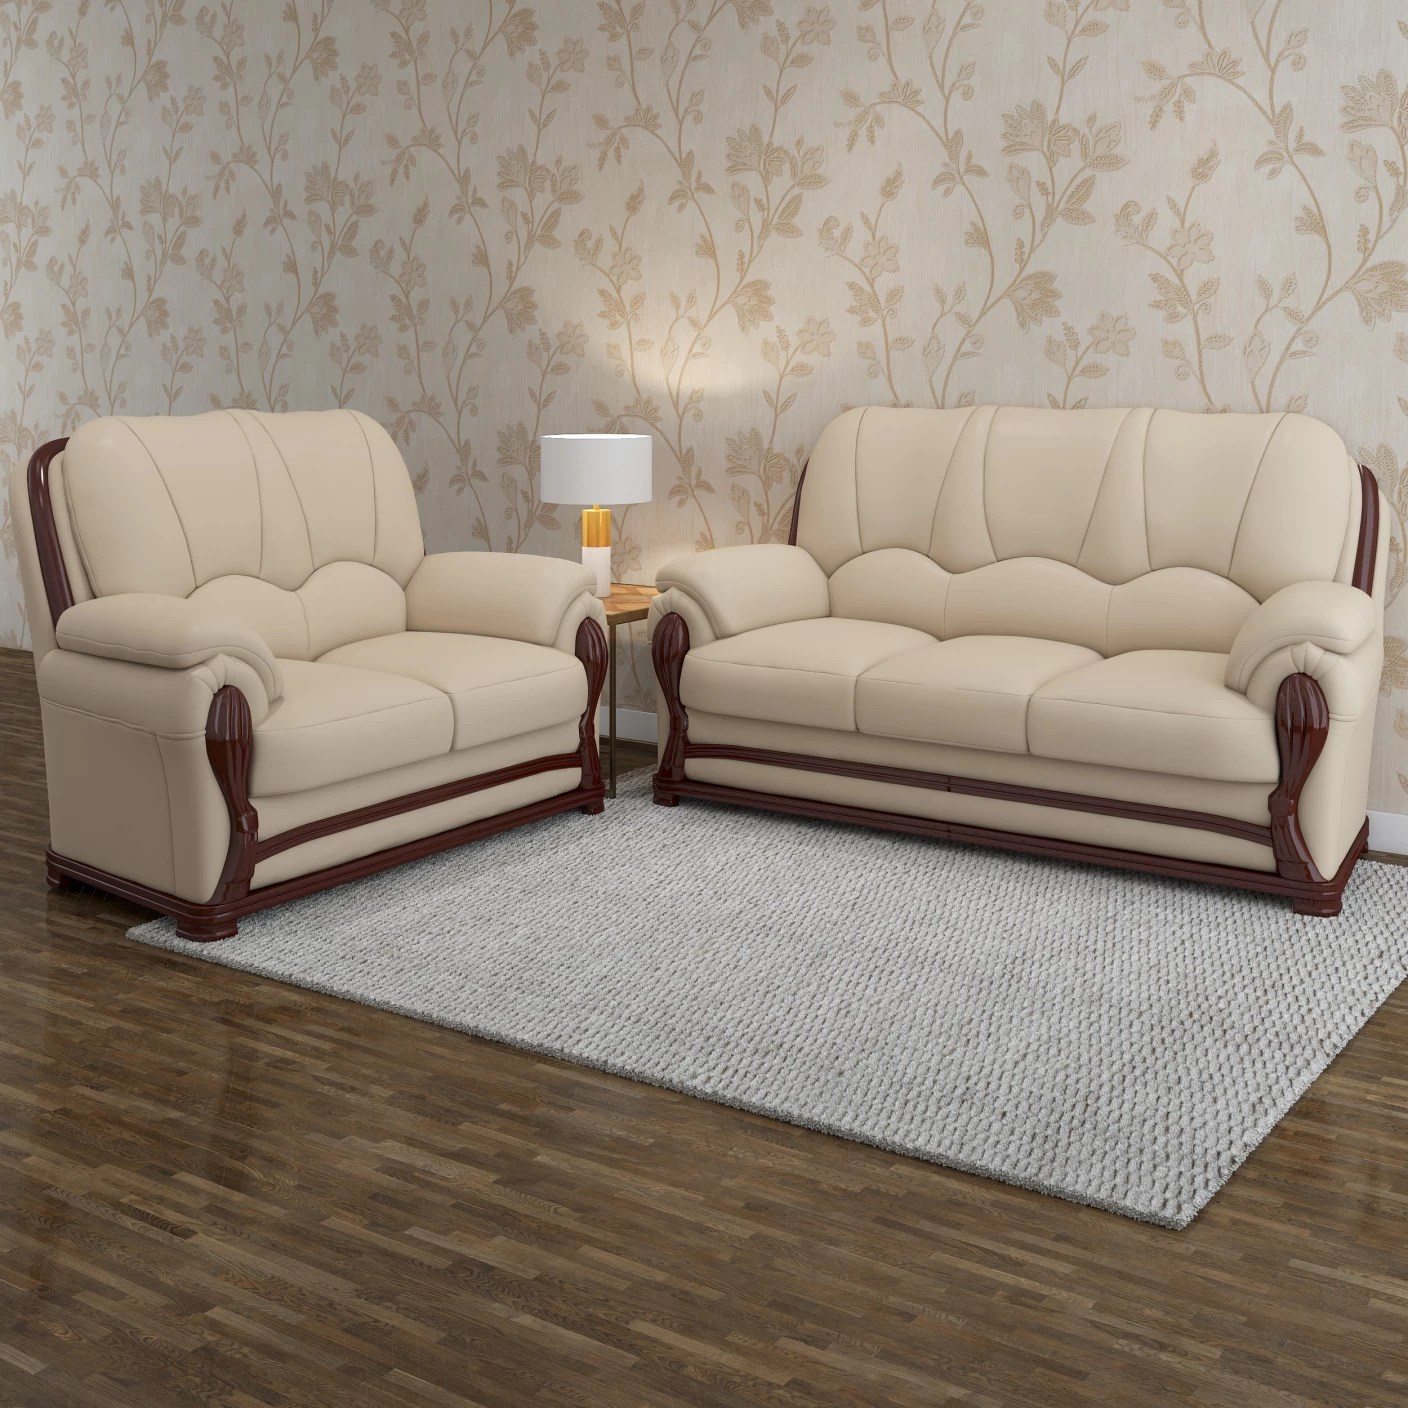 Sofa Set Price In Jagdalpur Vintage Ivoria Fabric 3 43 2 Mahogany Sofa Set Price In